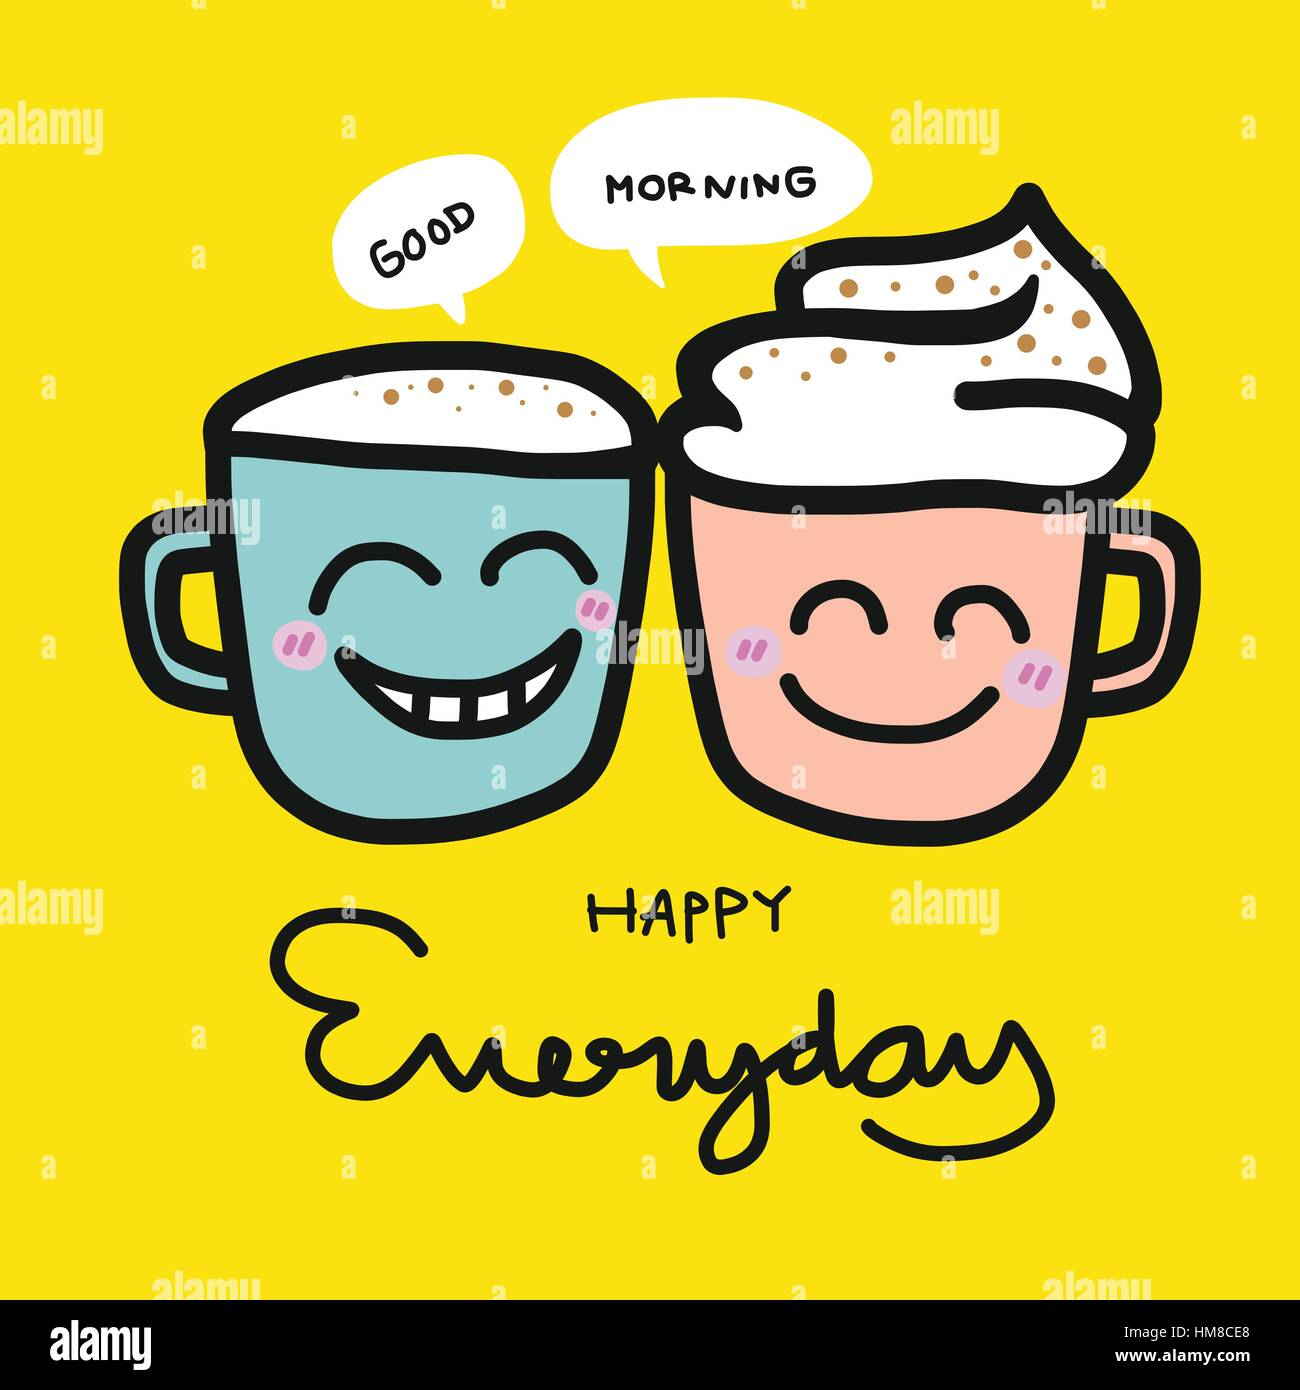 Happy everyday coffee cup cartoon illustration on yellow background - Stock Vector